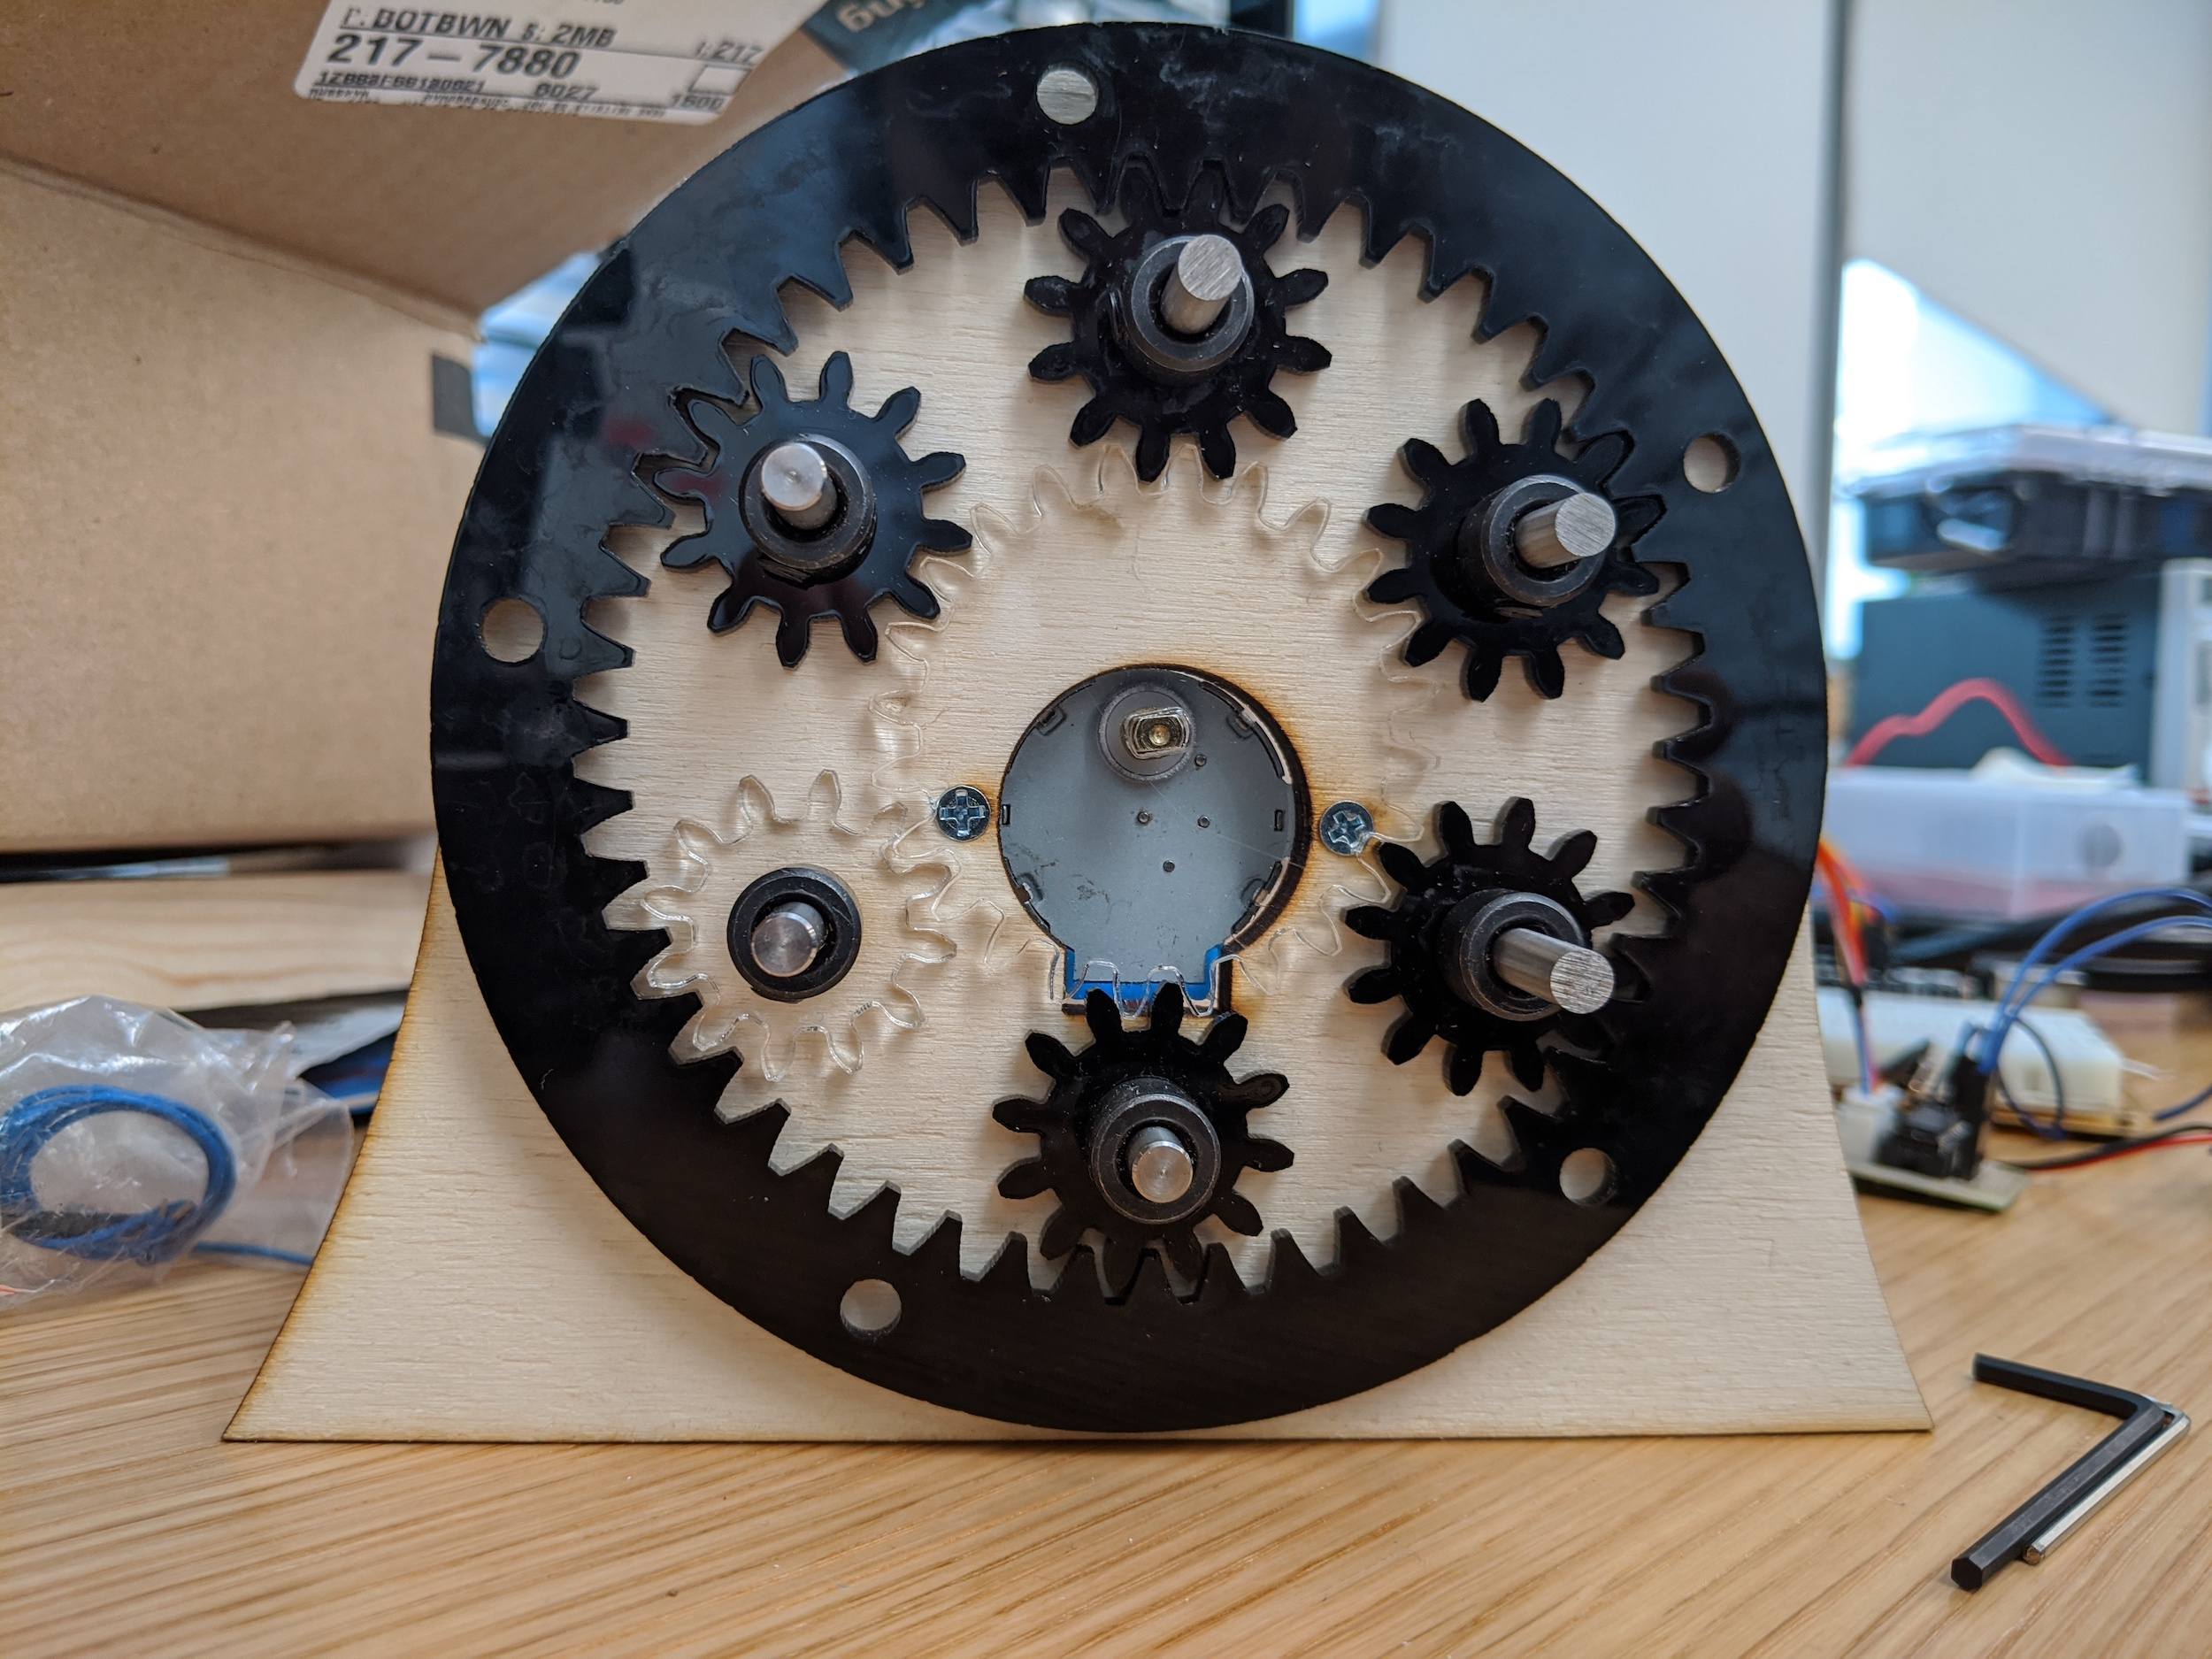 a set of laser cut acrylic gears in a planetary arrangement with six inner gears surrounded by one outer ring gear